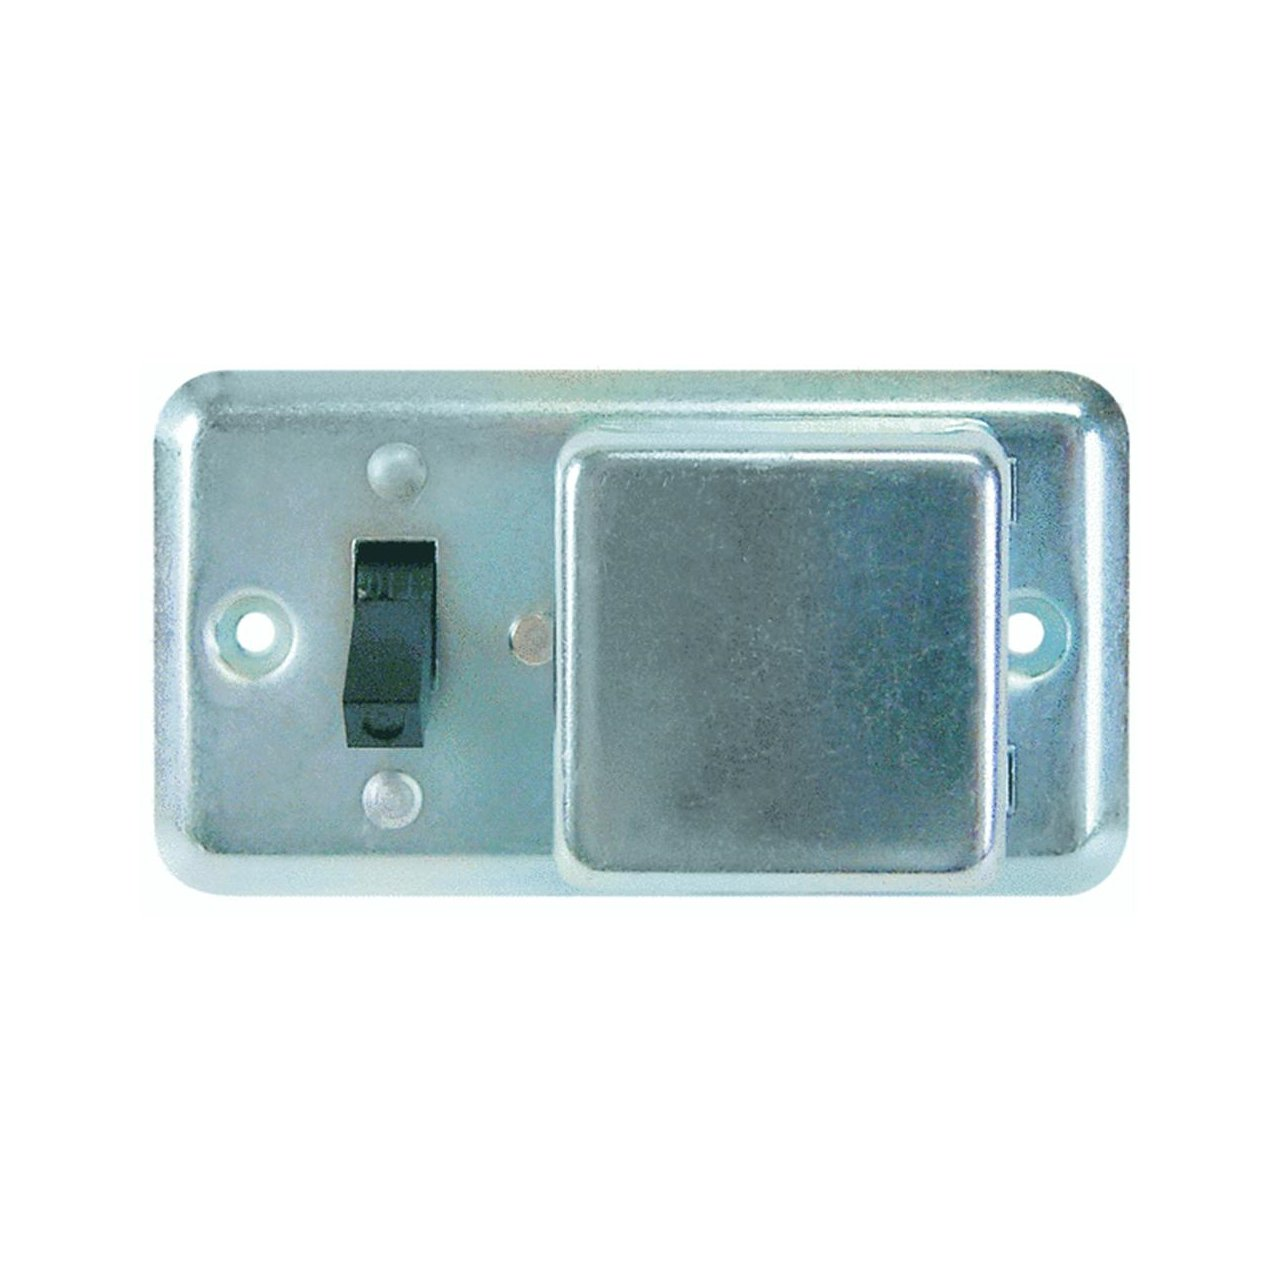 Cooper BP/SSU Bussman Switch & Fuse Holder, Gray - Automotive Fuse Holders  - Amazon.com